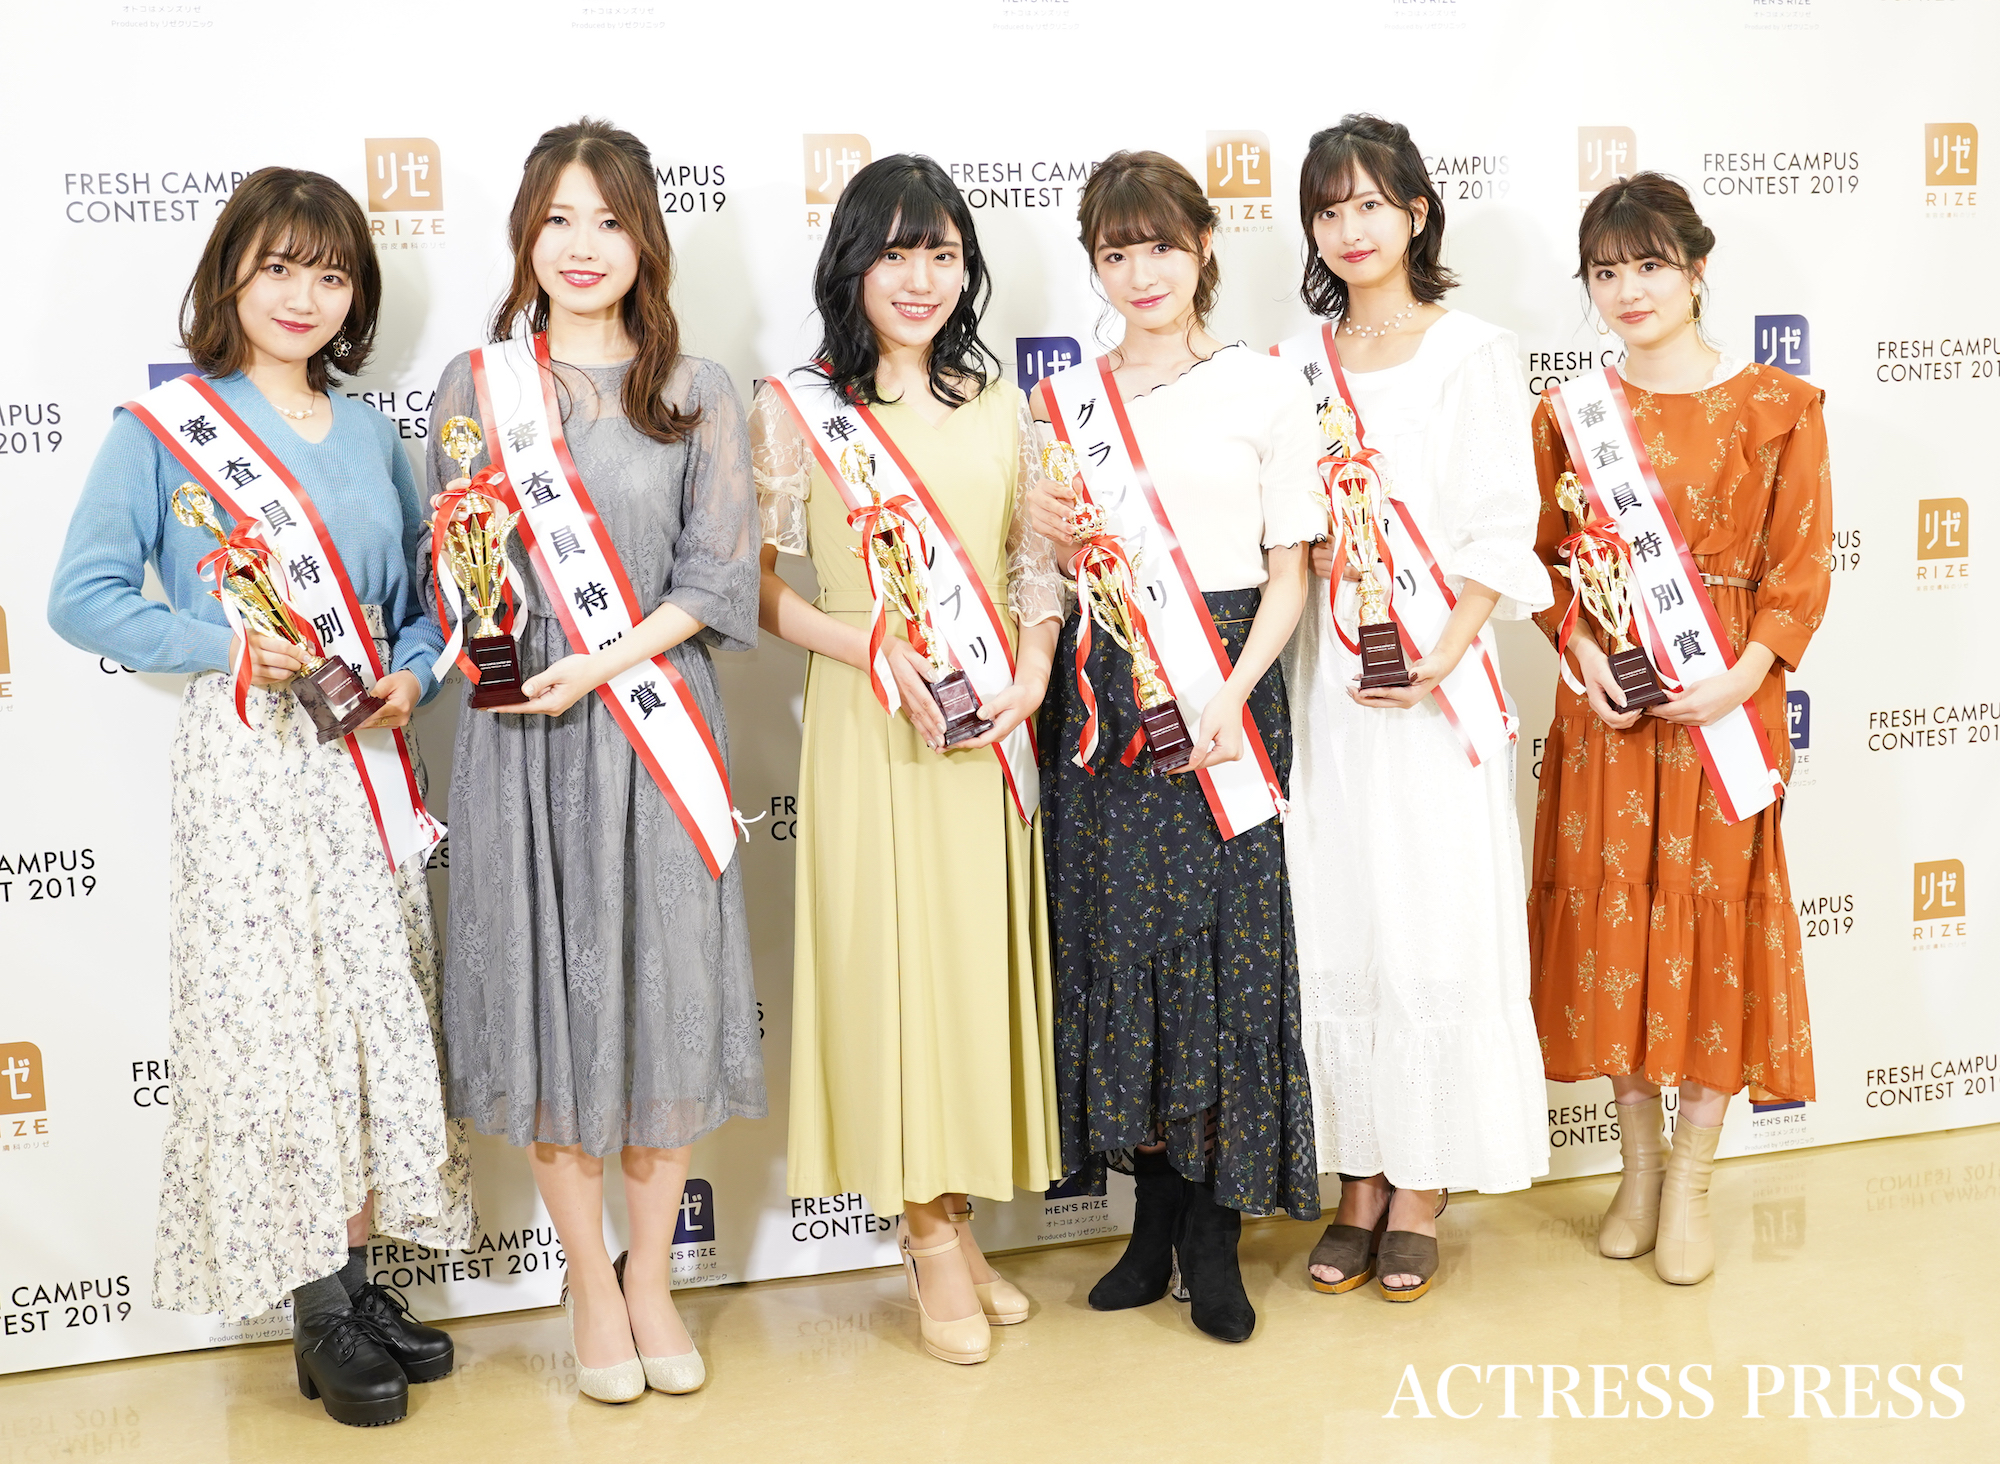 「FRESH CAMPUS CONTEST 2019」グランプリ・準グランプリ・審査員特別賞(2019年11月17日)/撮影:ACTRESS PRESS編集部